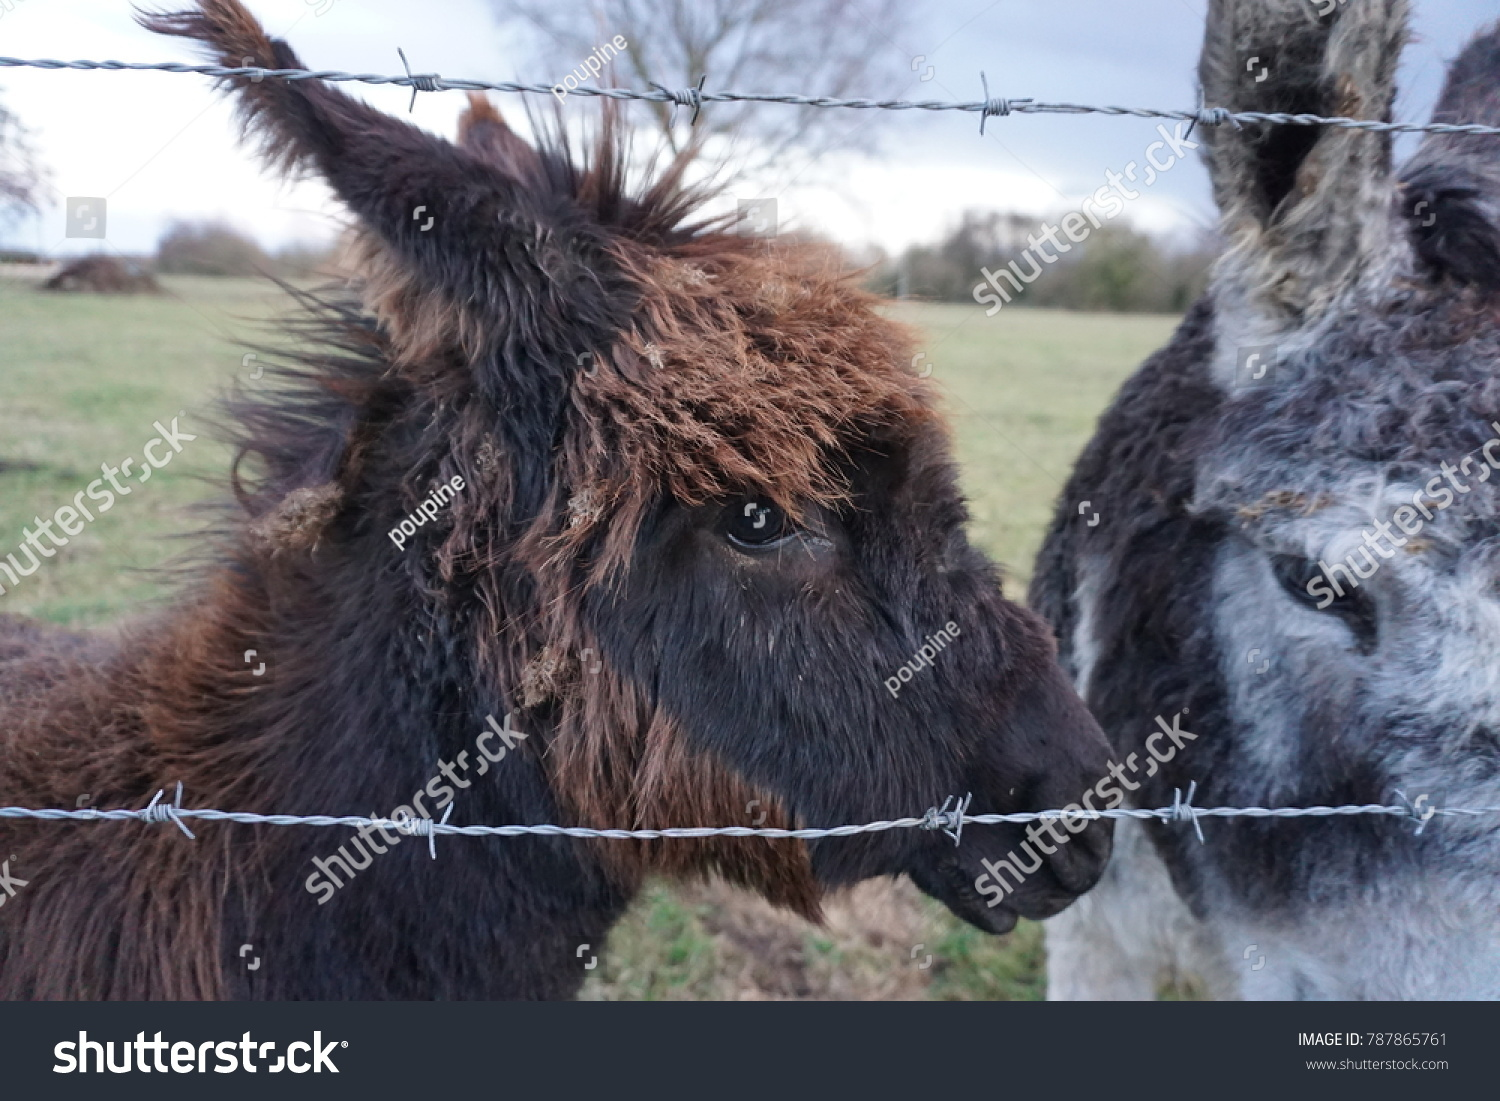 small brown hairy donkey baby his stock photo 787865761 - shutterstock